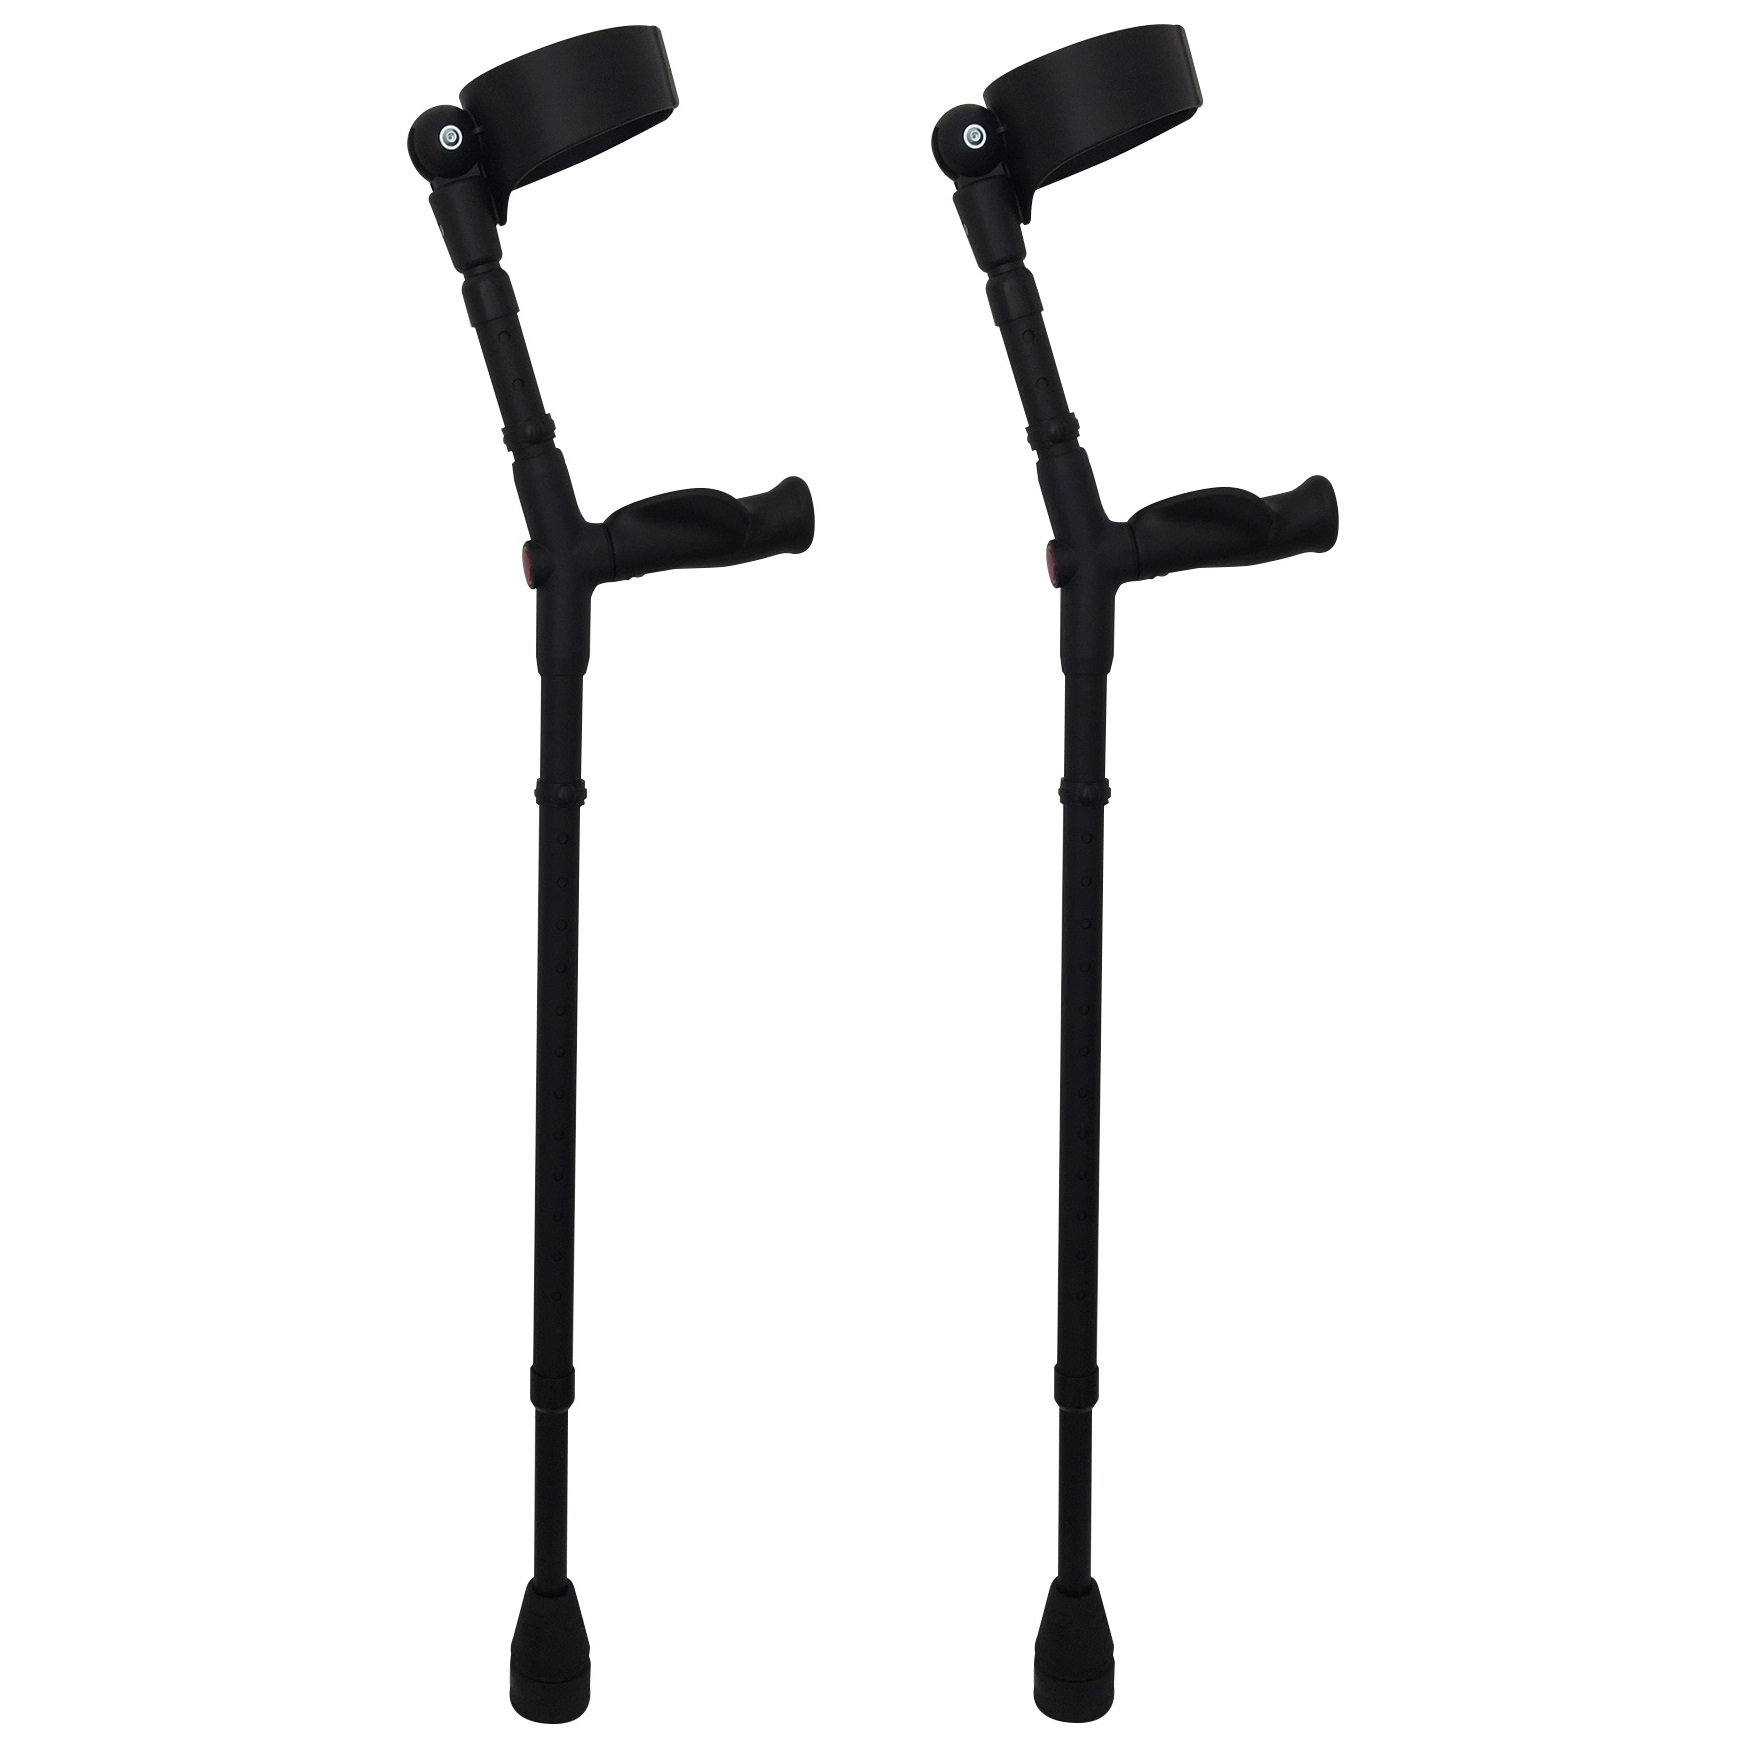 Thomas Fetterman Walk Easy 495 Adjustable Forearm Crutches Customizable with Choice of Tips (Adjustable with Tornado Gel Tip)